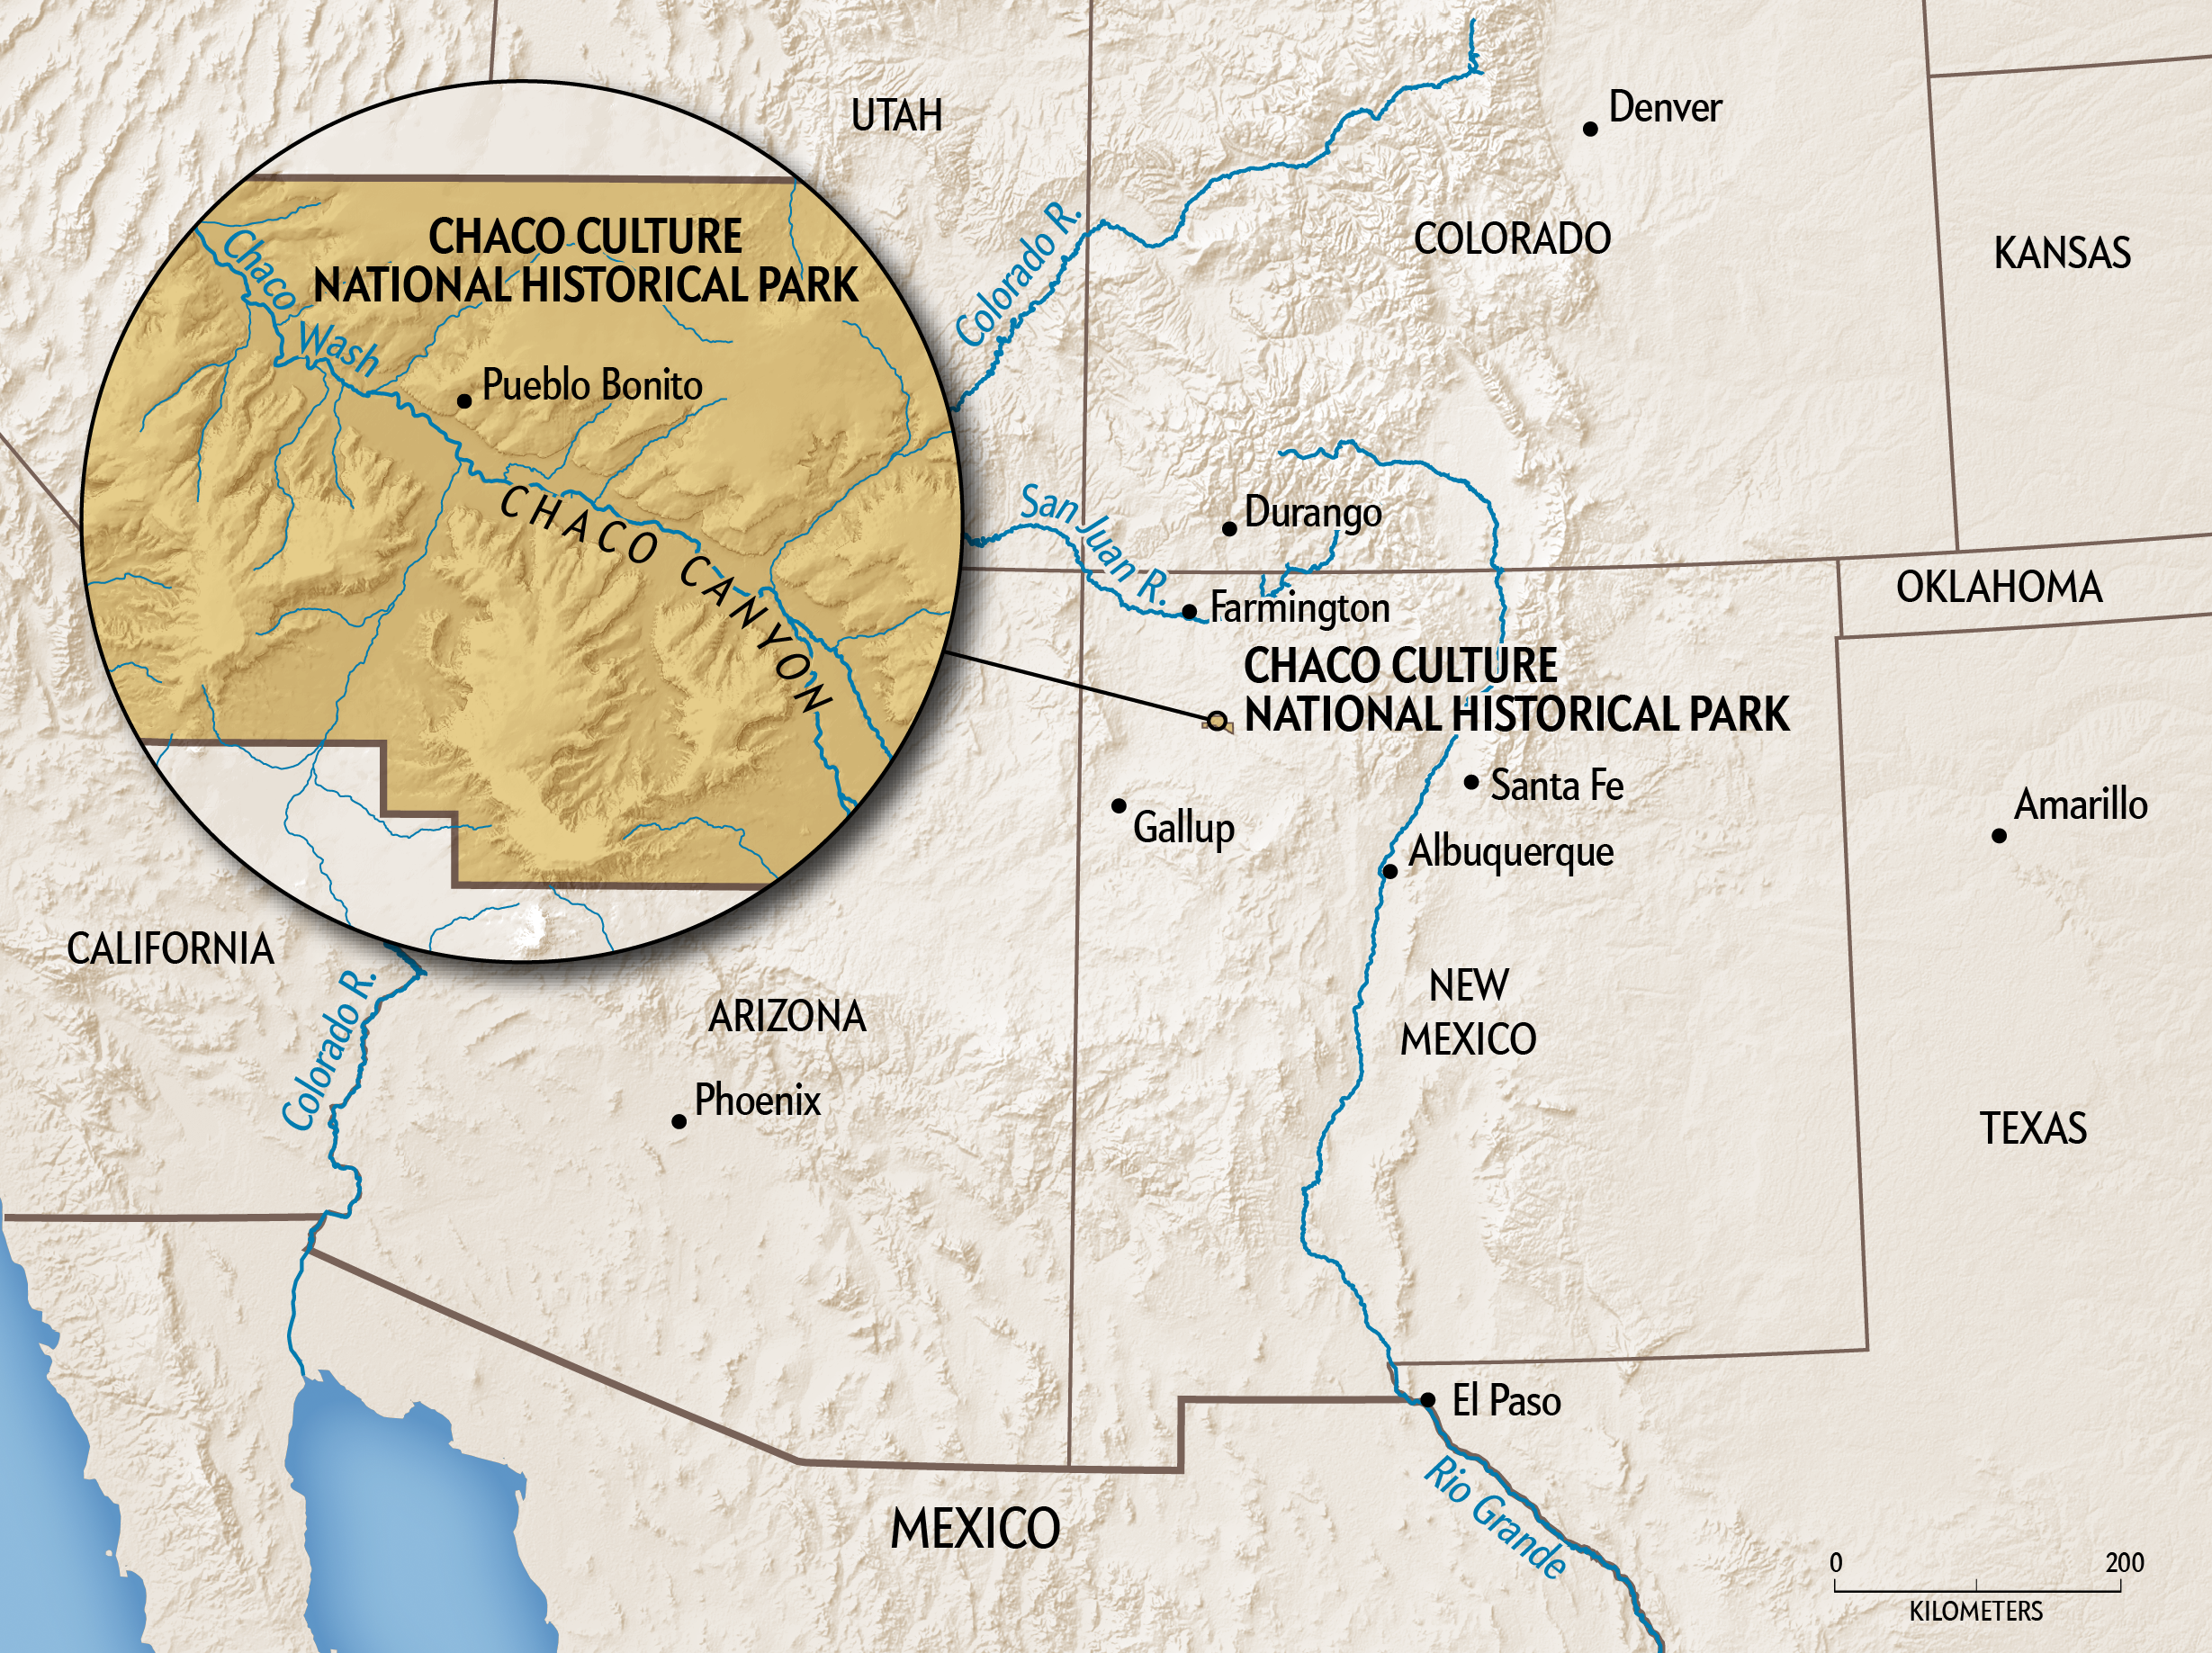 Ancient DNA Yields Unprecedented Insights into Mysterious Chaco Civilization - Scientific American